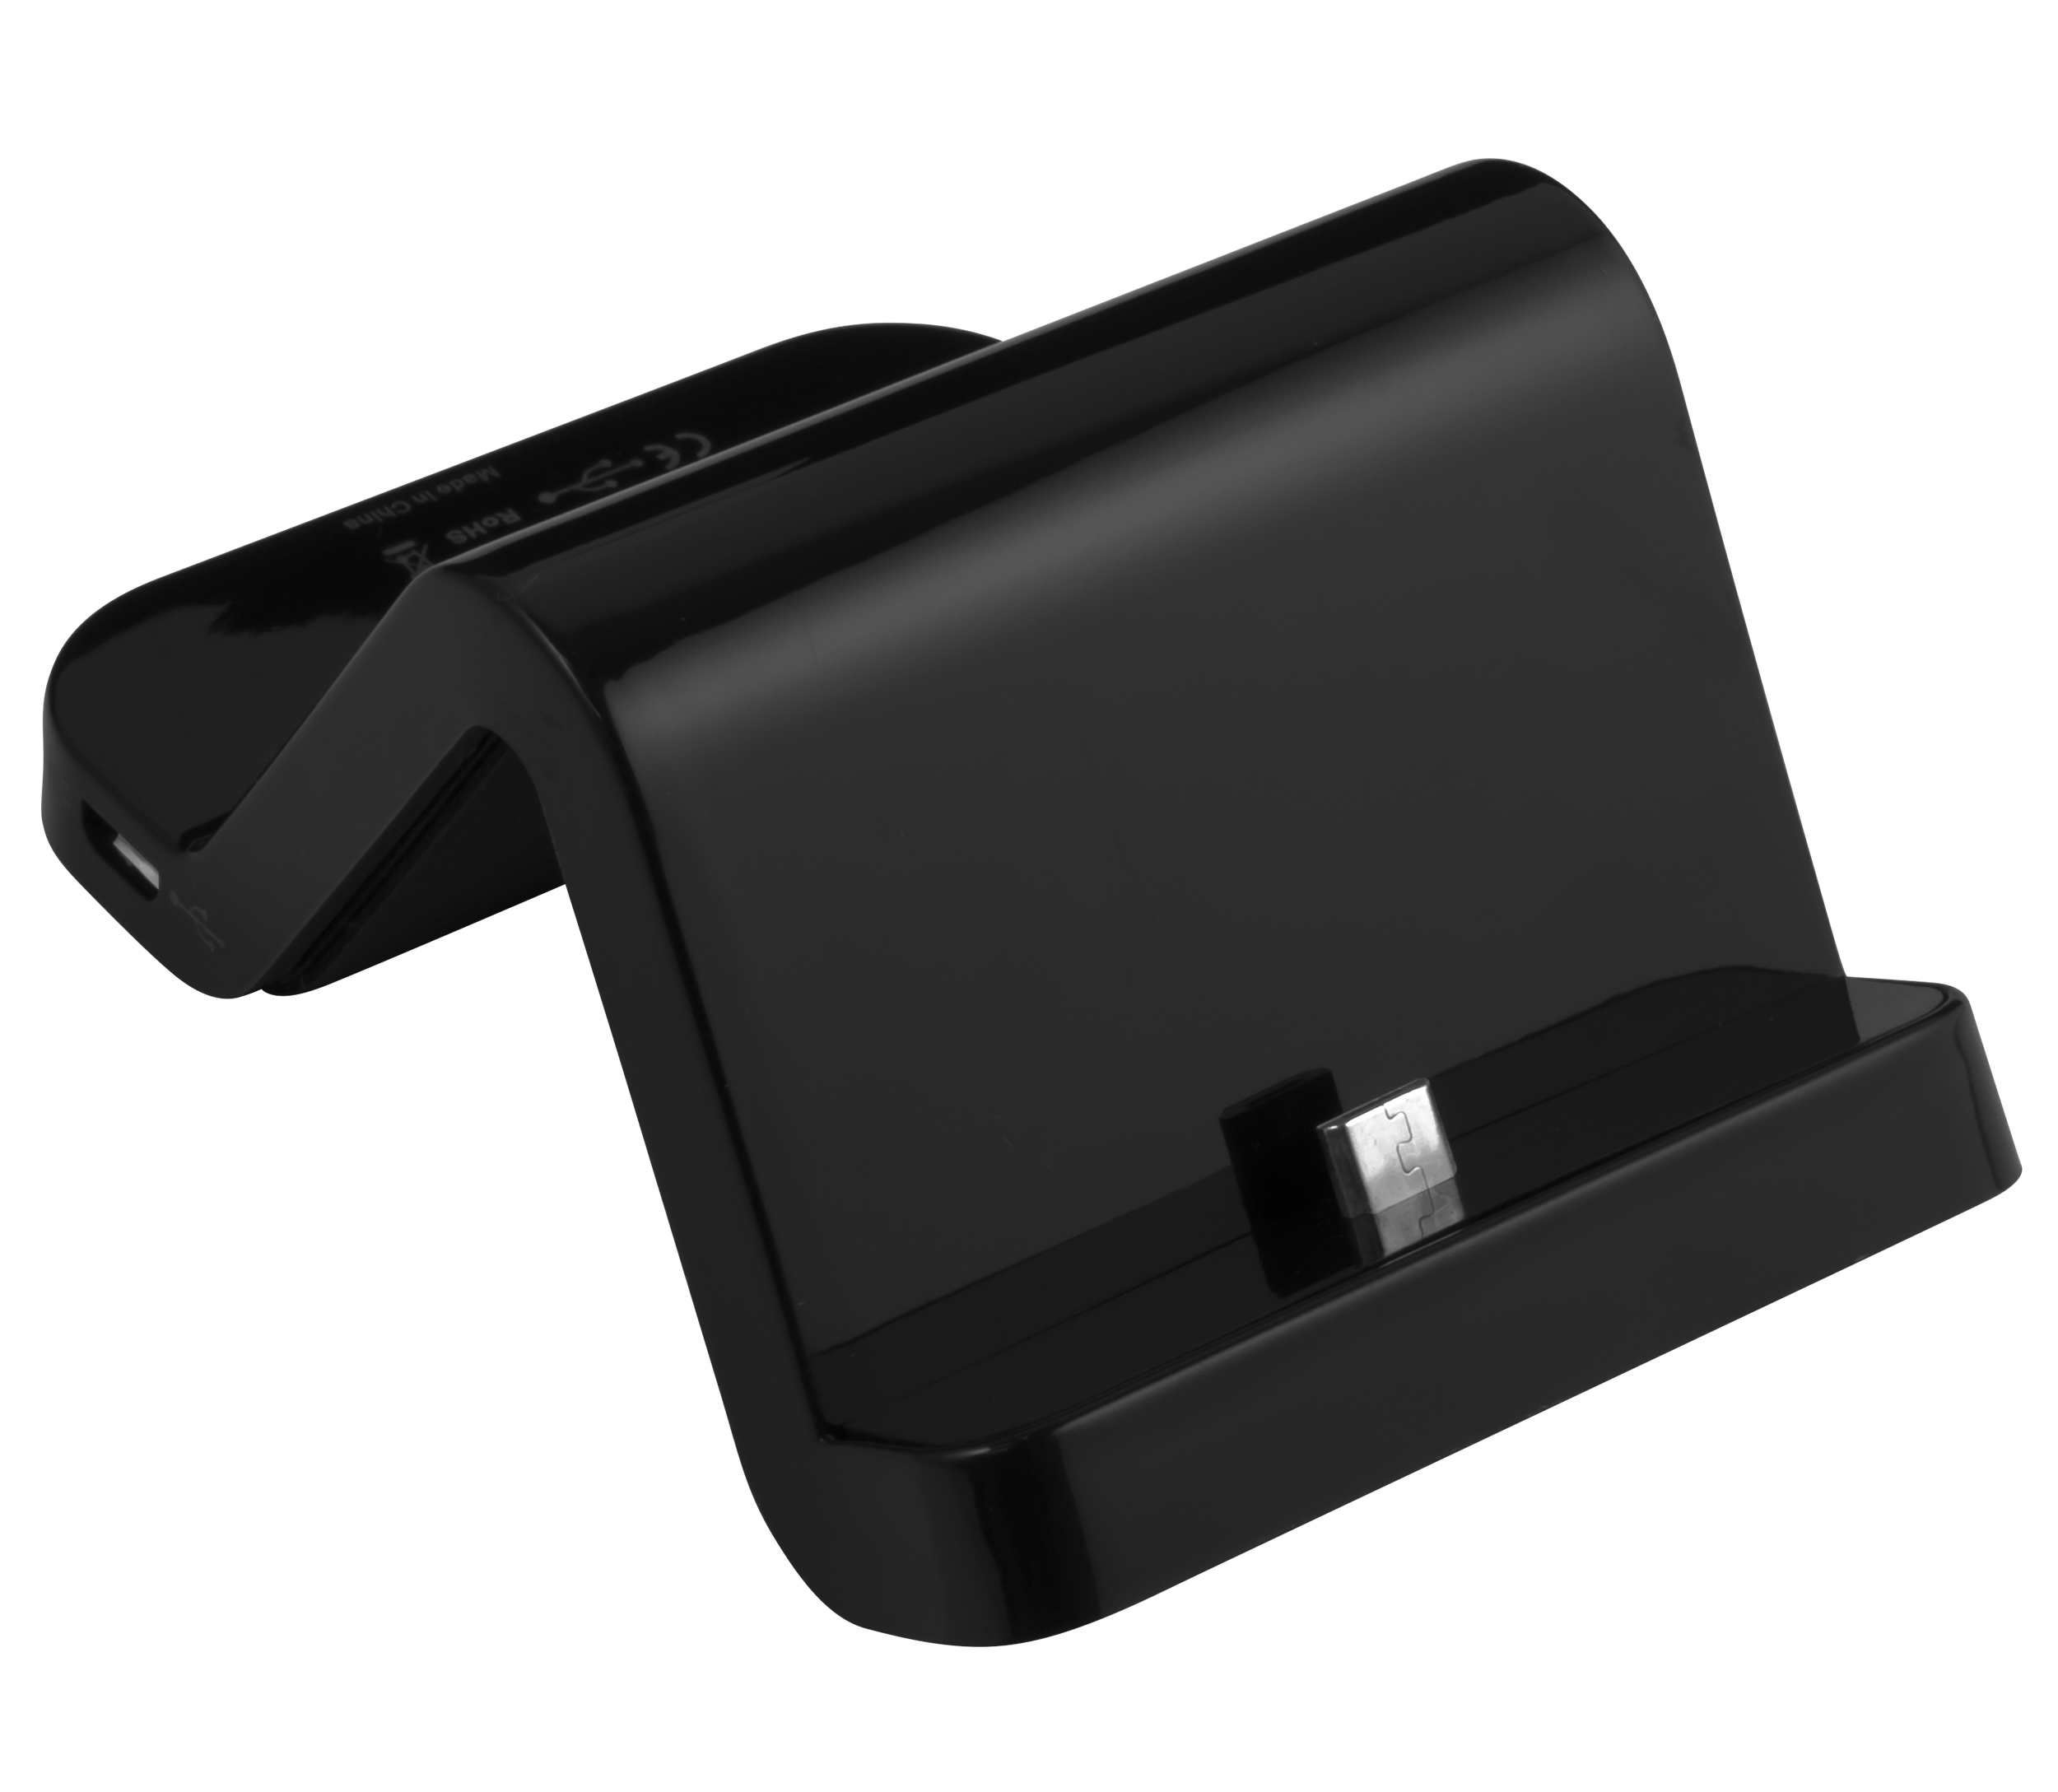 Galaxy S7 Induktives Laden Mumbi Dockingstation Für Samsung Galaxy S7 And S7 Edge